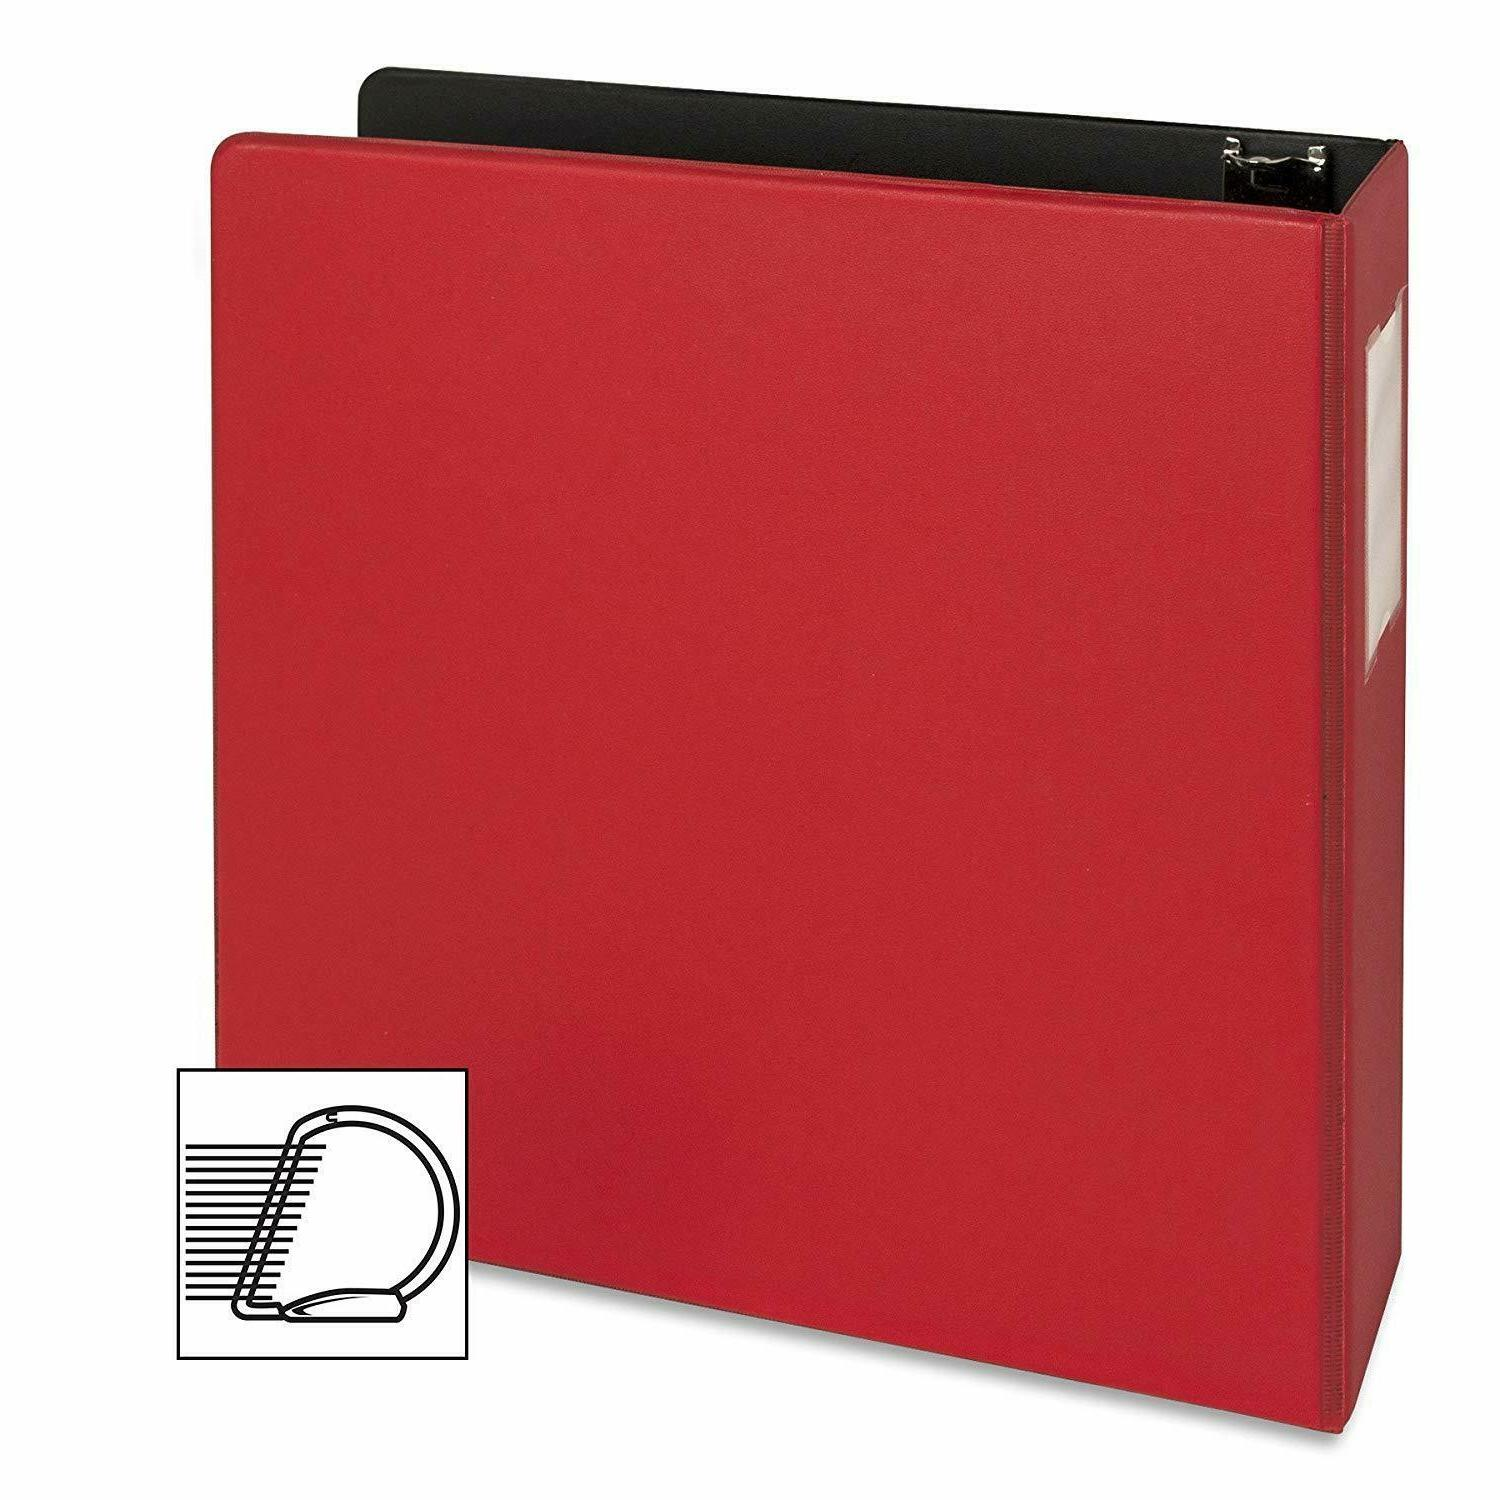 case of 6 33112 2 red slanted